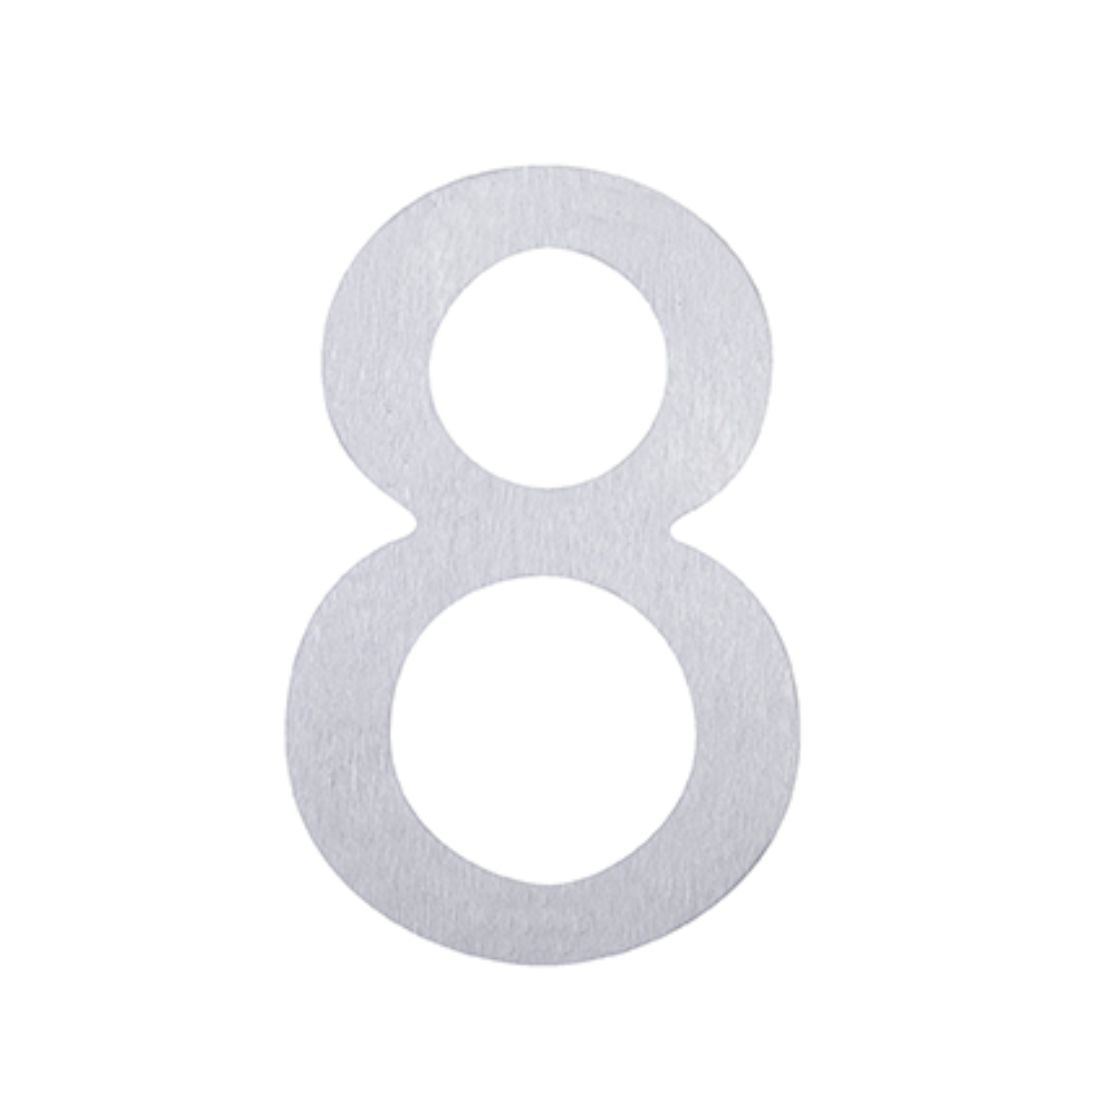 Adhesive Number 8 Stainless Steel 76mm 5367-8-SS